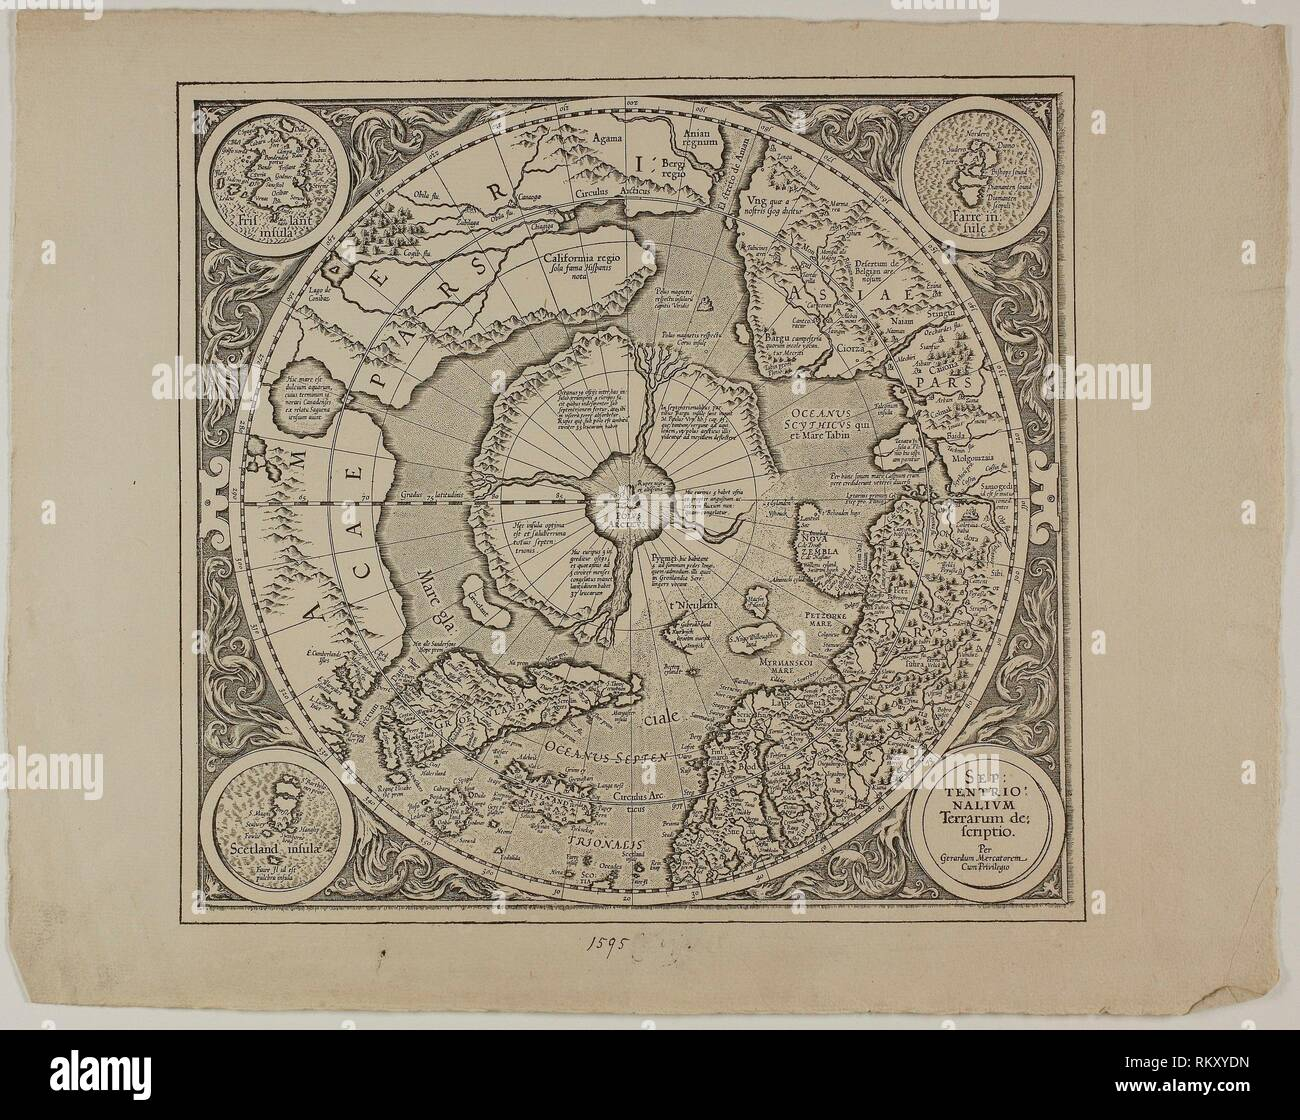 Map of the Mercator Projection - 1595, reprinted 1889 - Unknown Artist English, 19th century - Origin: England, Date: 1889, Medium: Engraving in - Stock Image